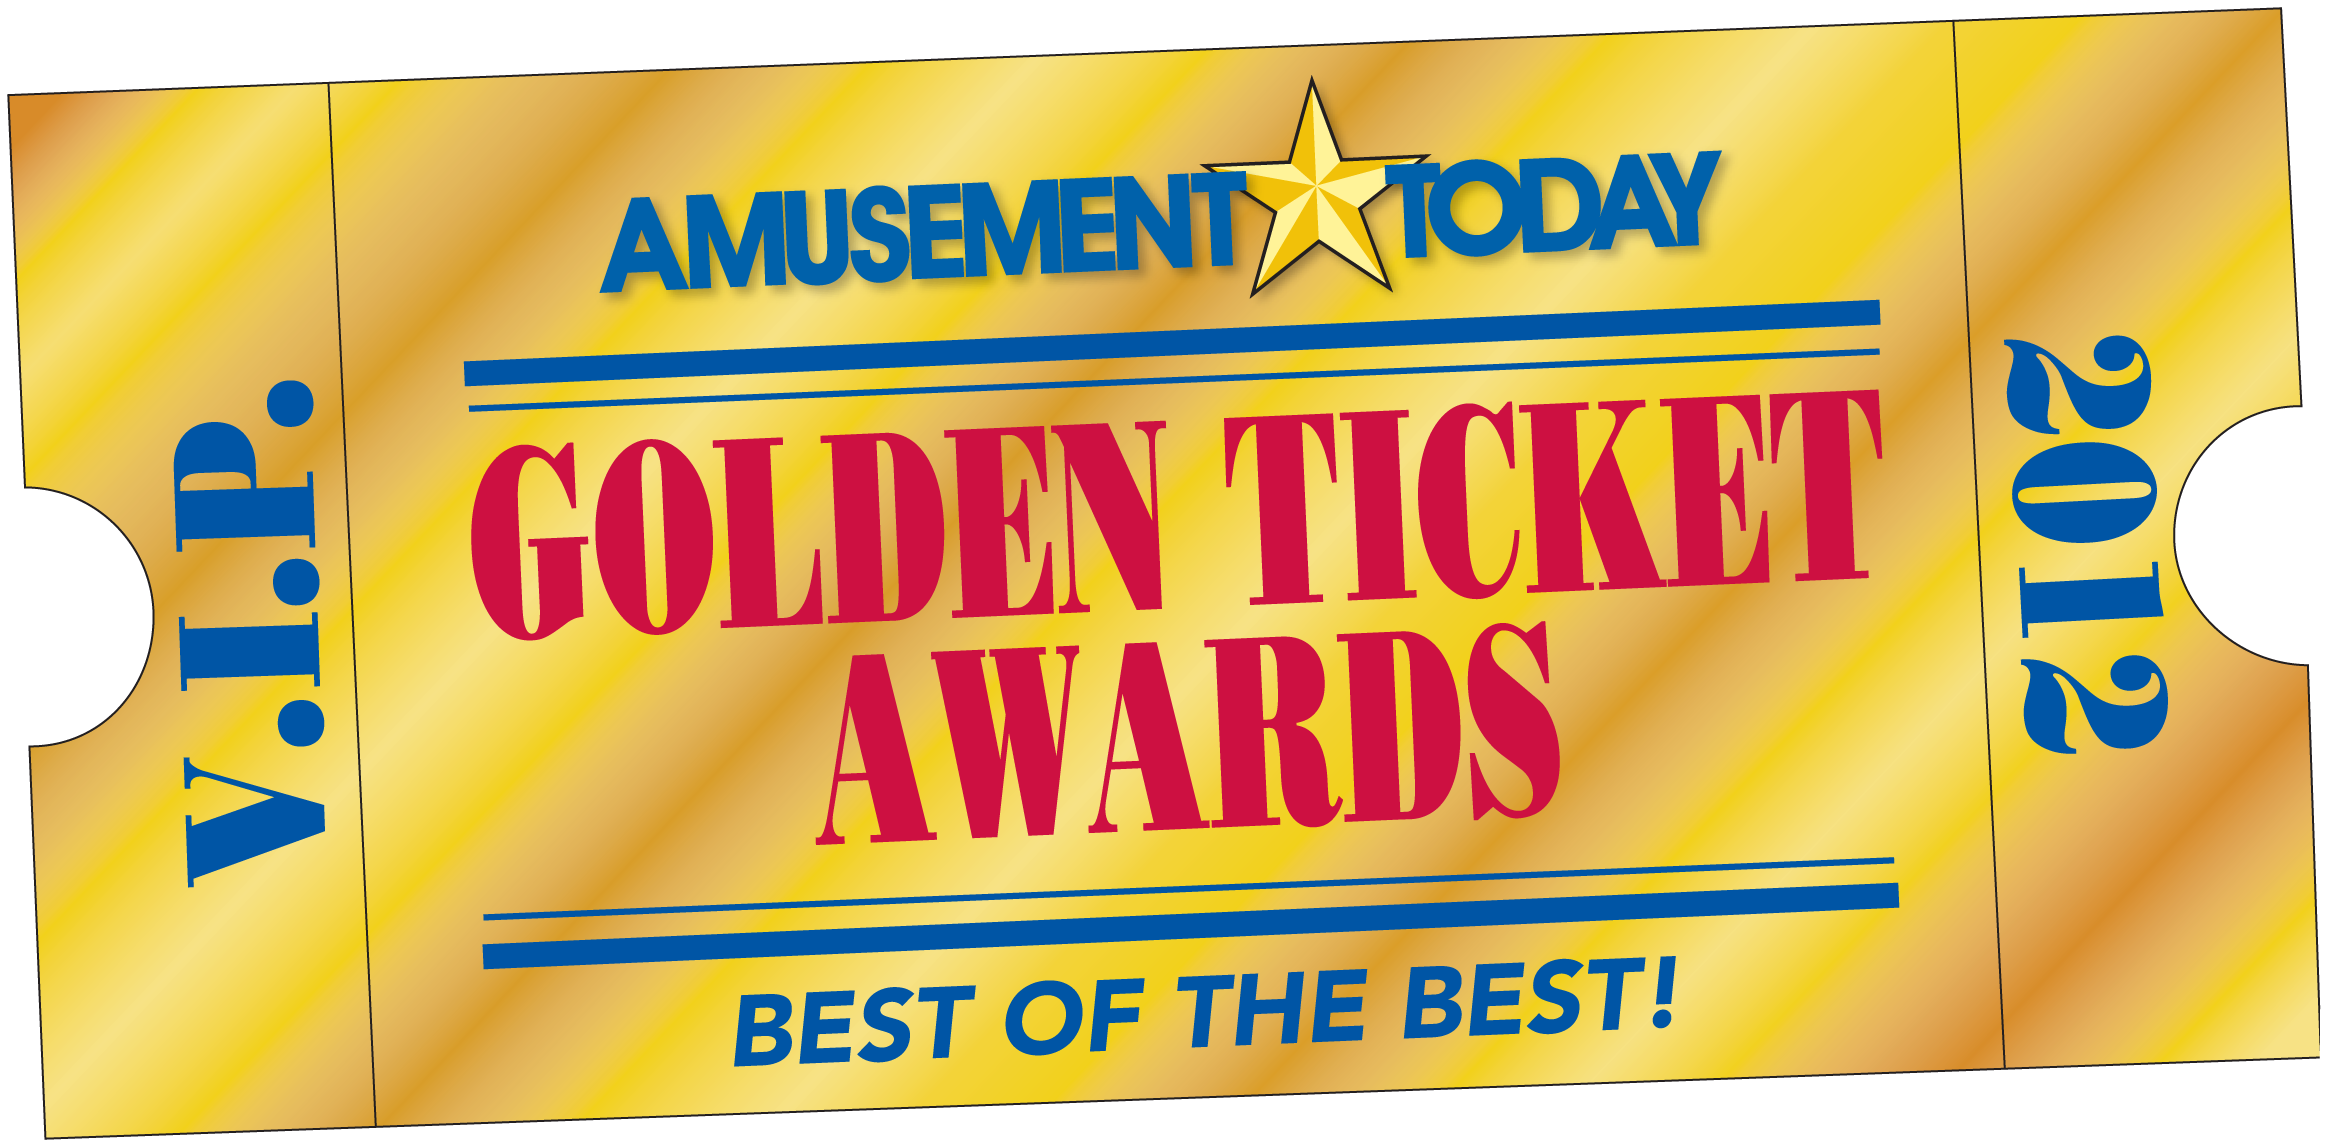 Orlando and Southern California Theme Park Results in the 2012 Golden Ticket Awards